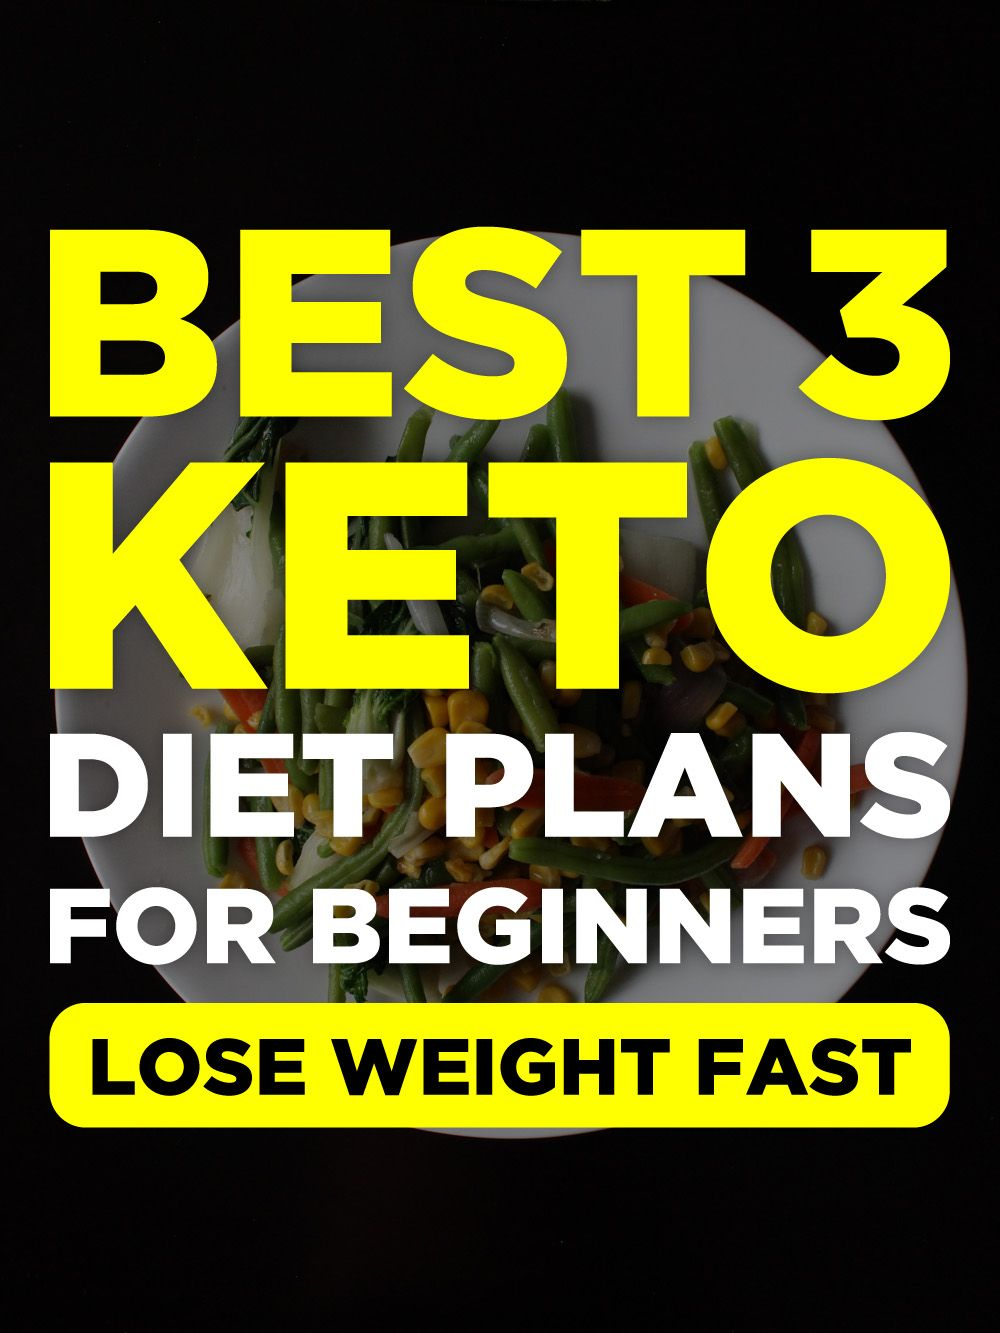 Photo of Keto Diet Plans, low carb snacks atkins, ket